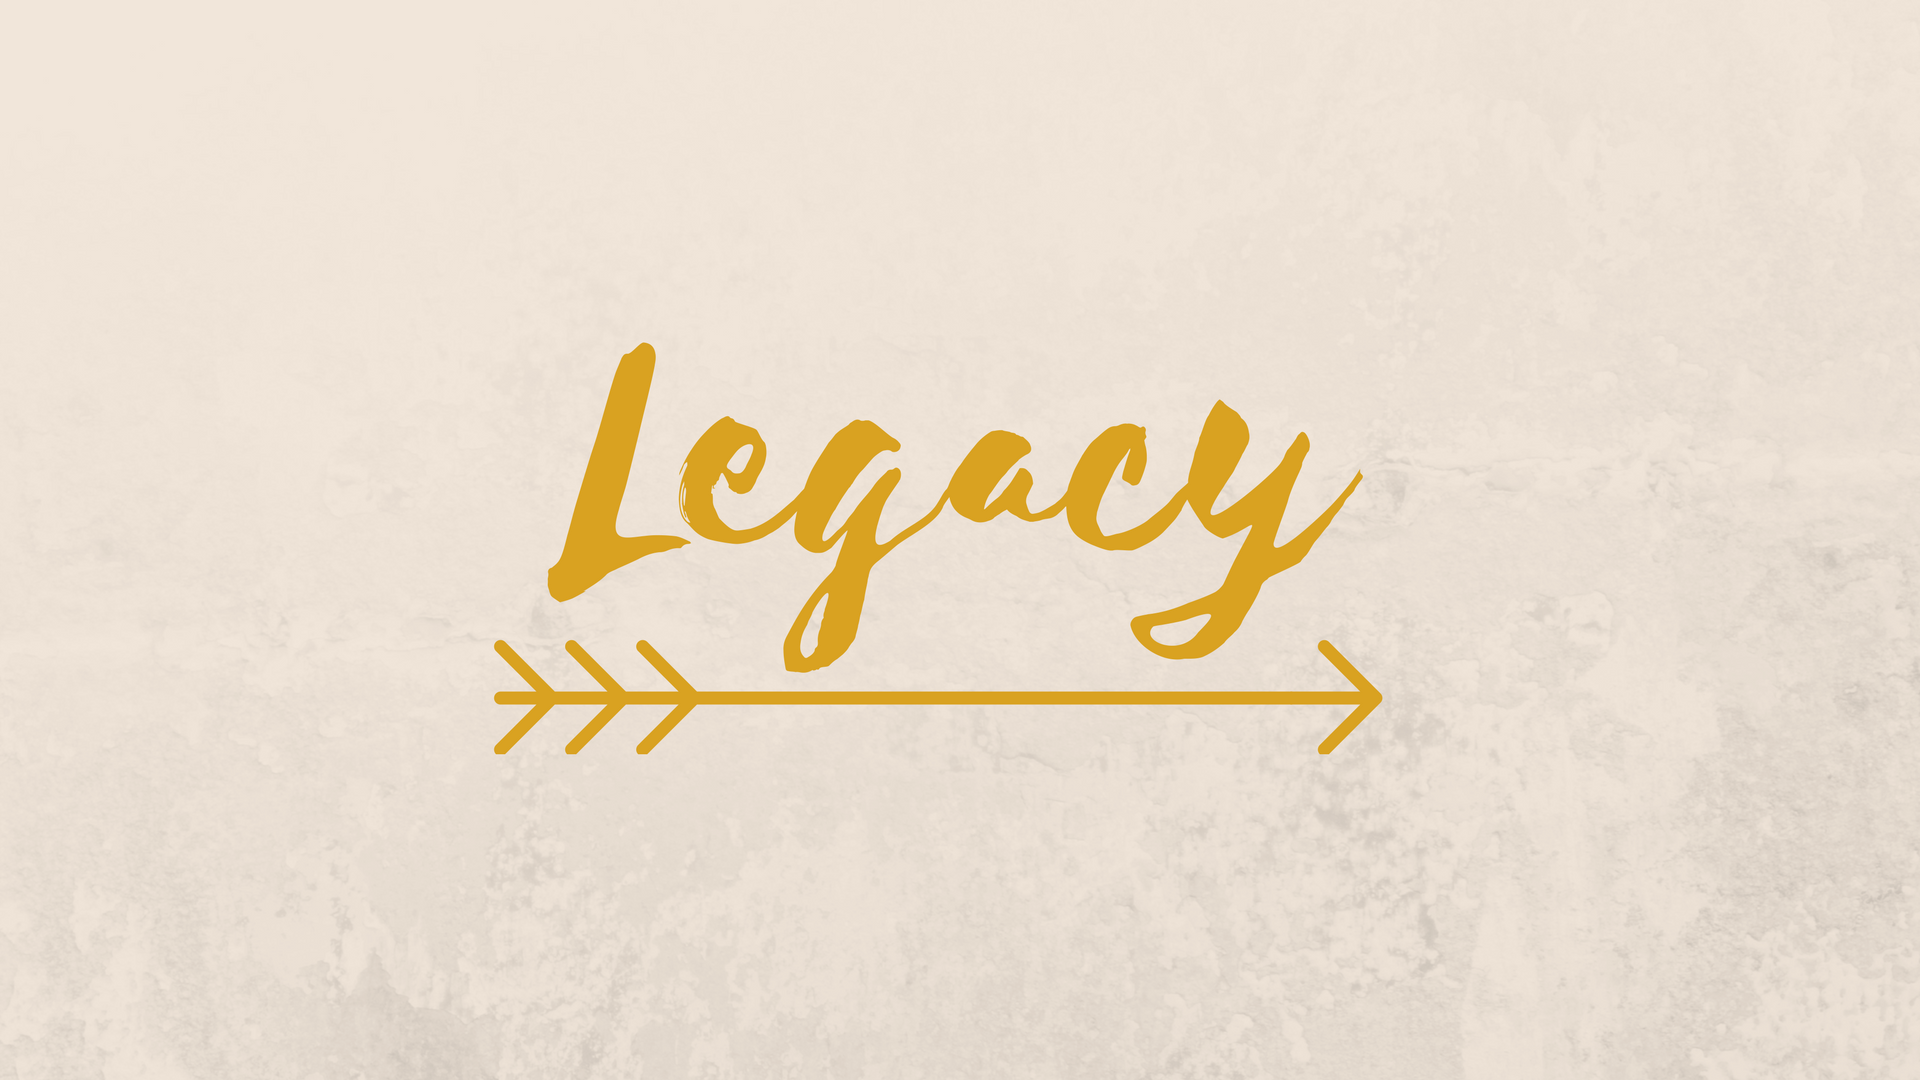 Legacy Graphic (FINAL).PNG